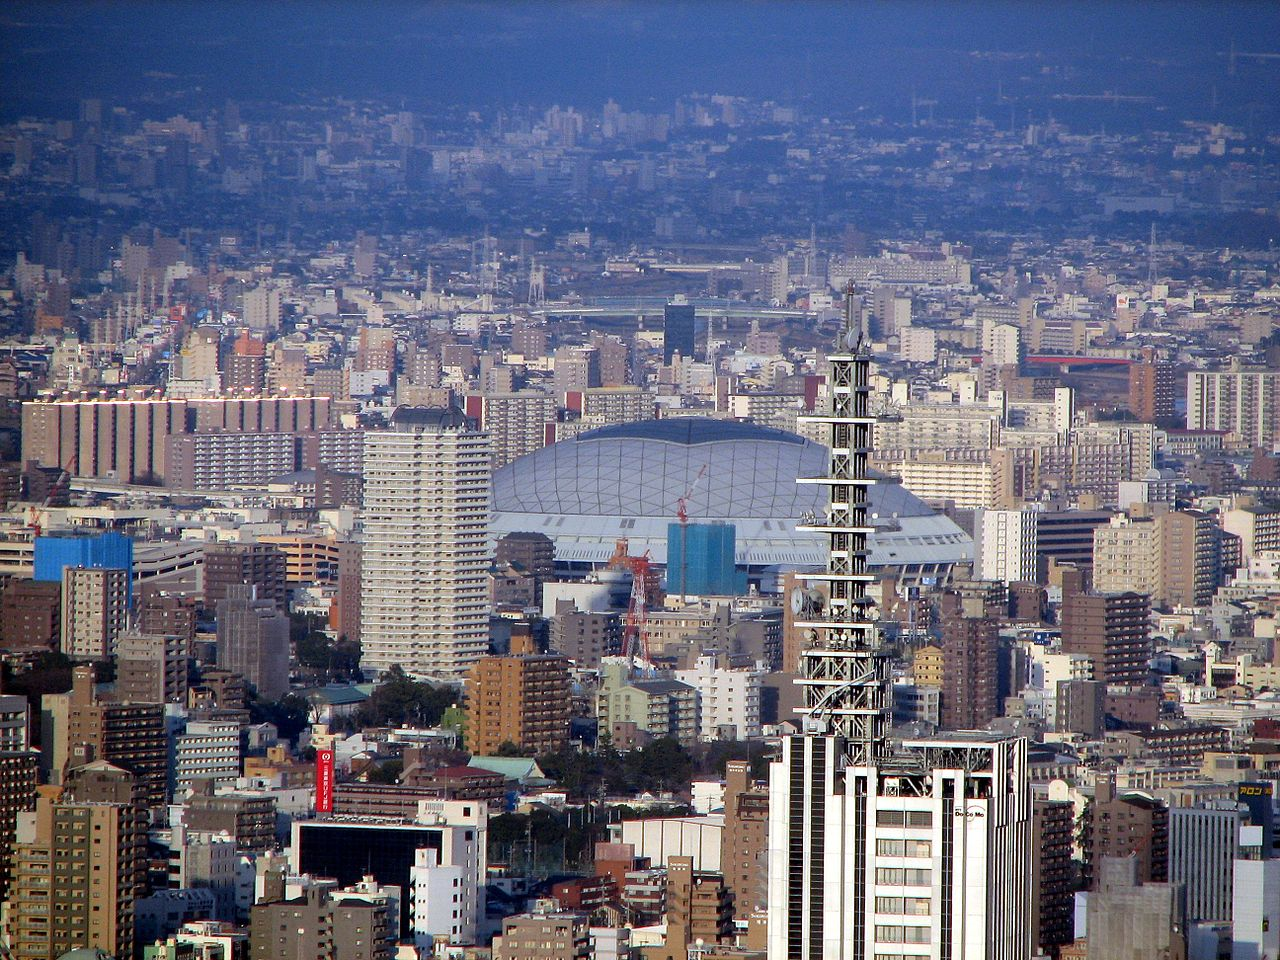 Јапан - Page 2 1280px-Nagoya_dome_from_Midland_Square